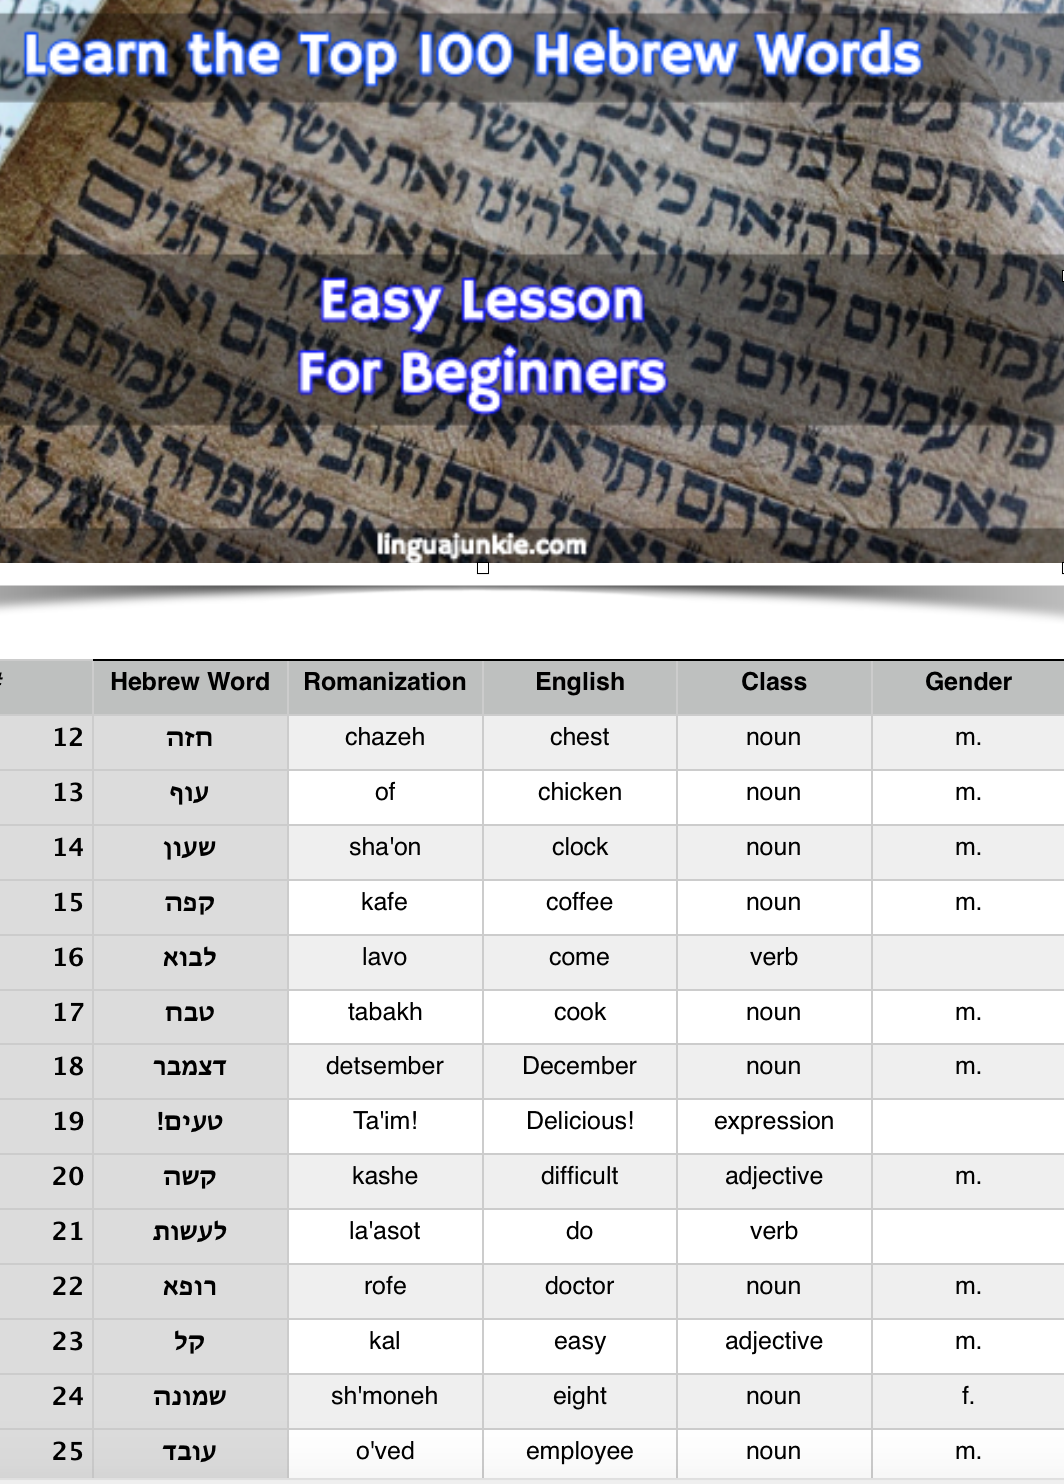 gogettell.com - Learn Hebrew language with Go Get & Tell